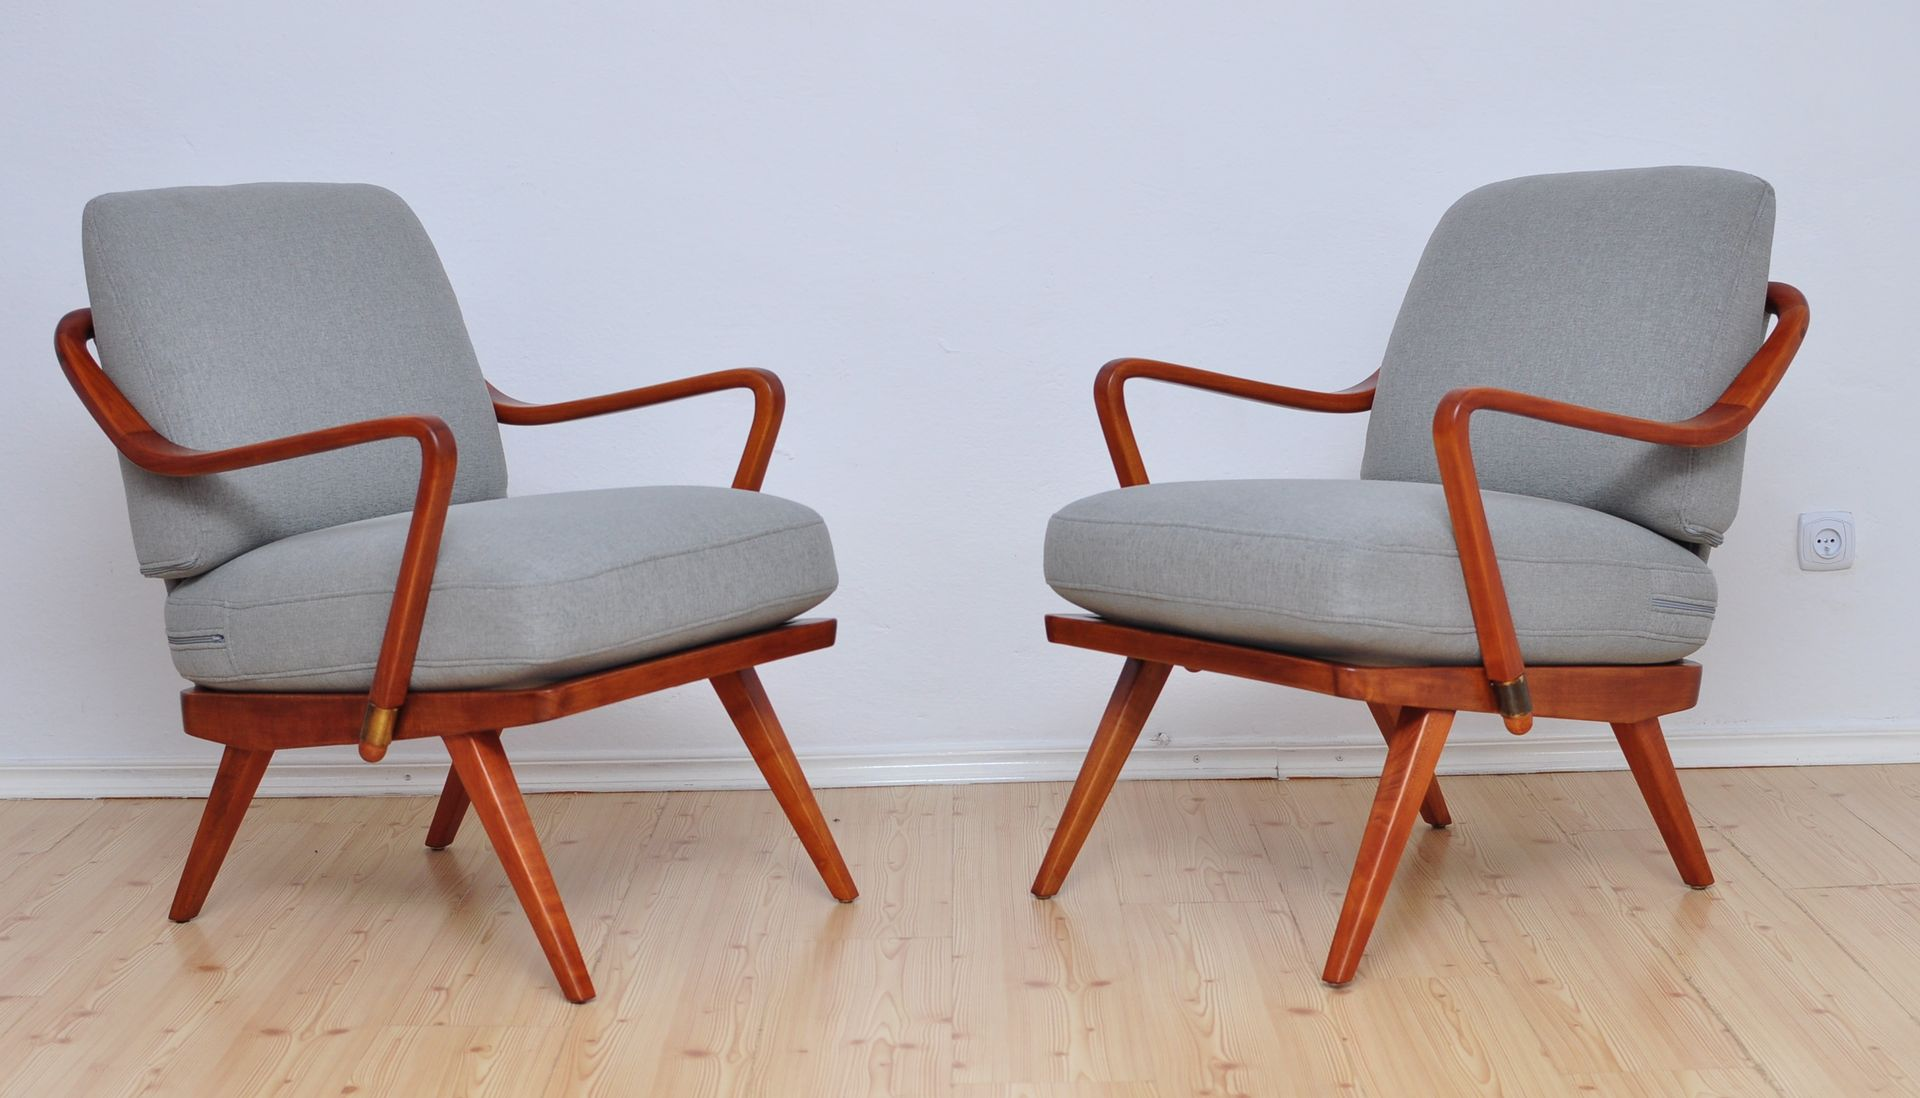 Armchair by Walter Knoll Wilhelm Knoll 1950s Set of 2 for sale